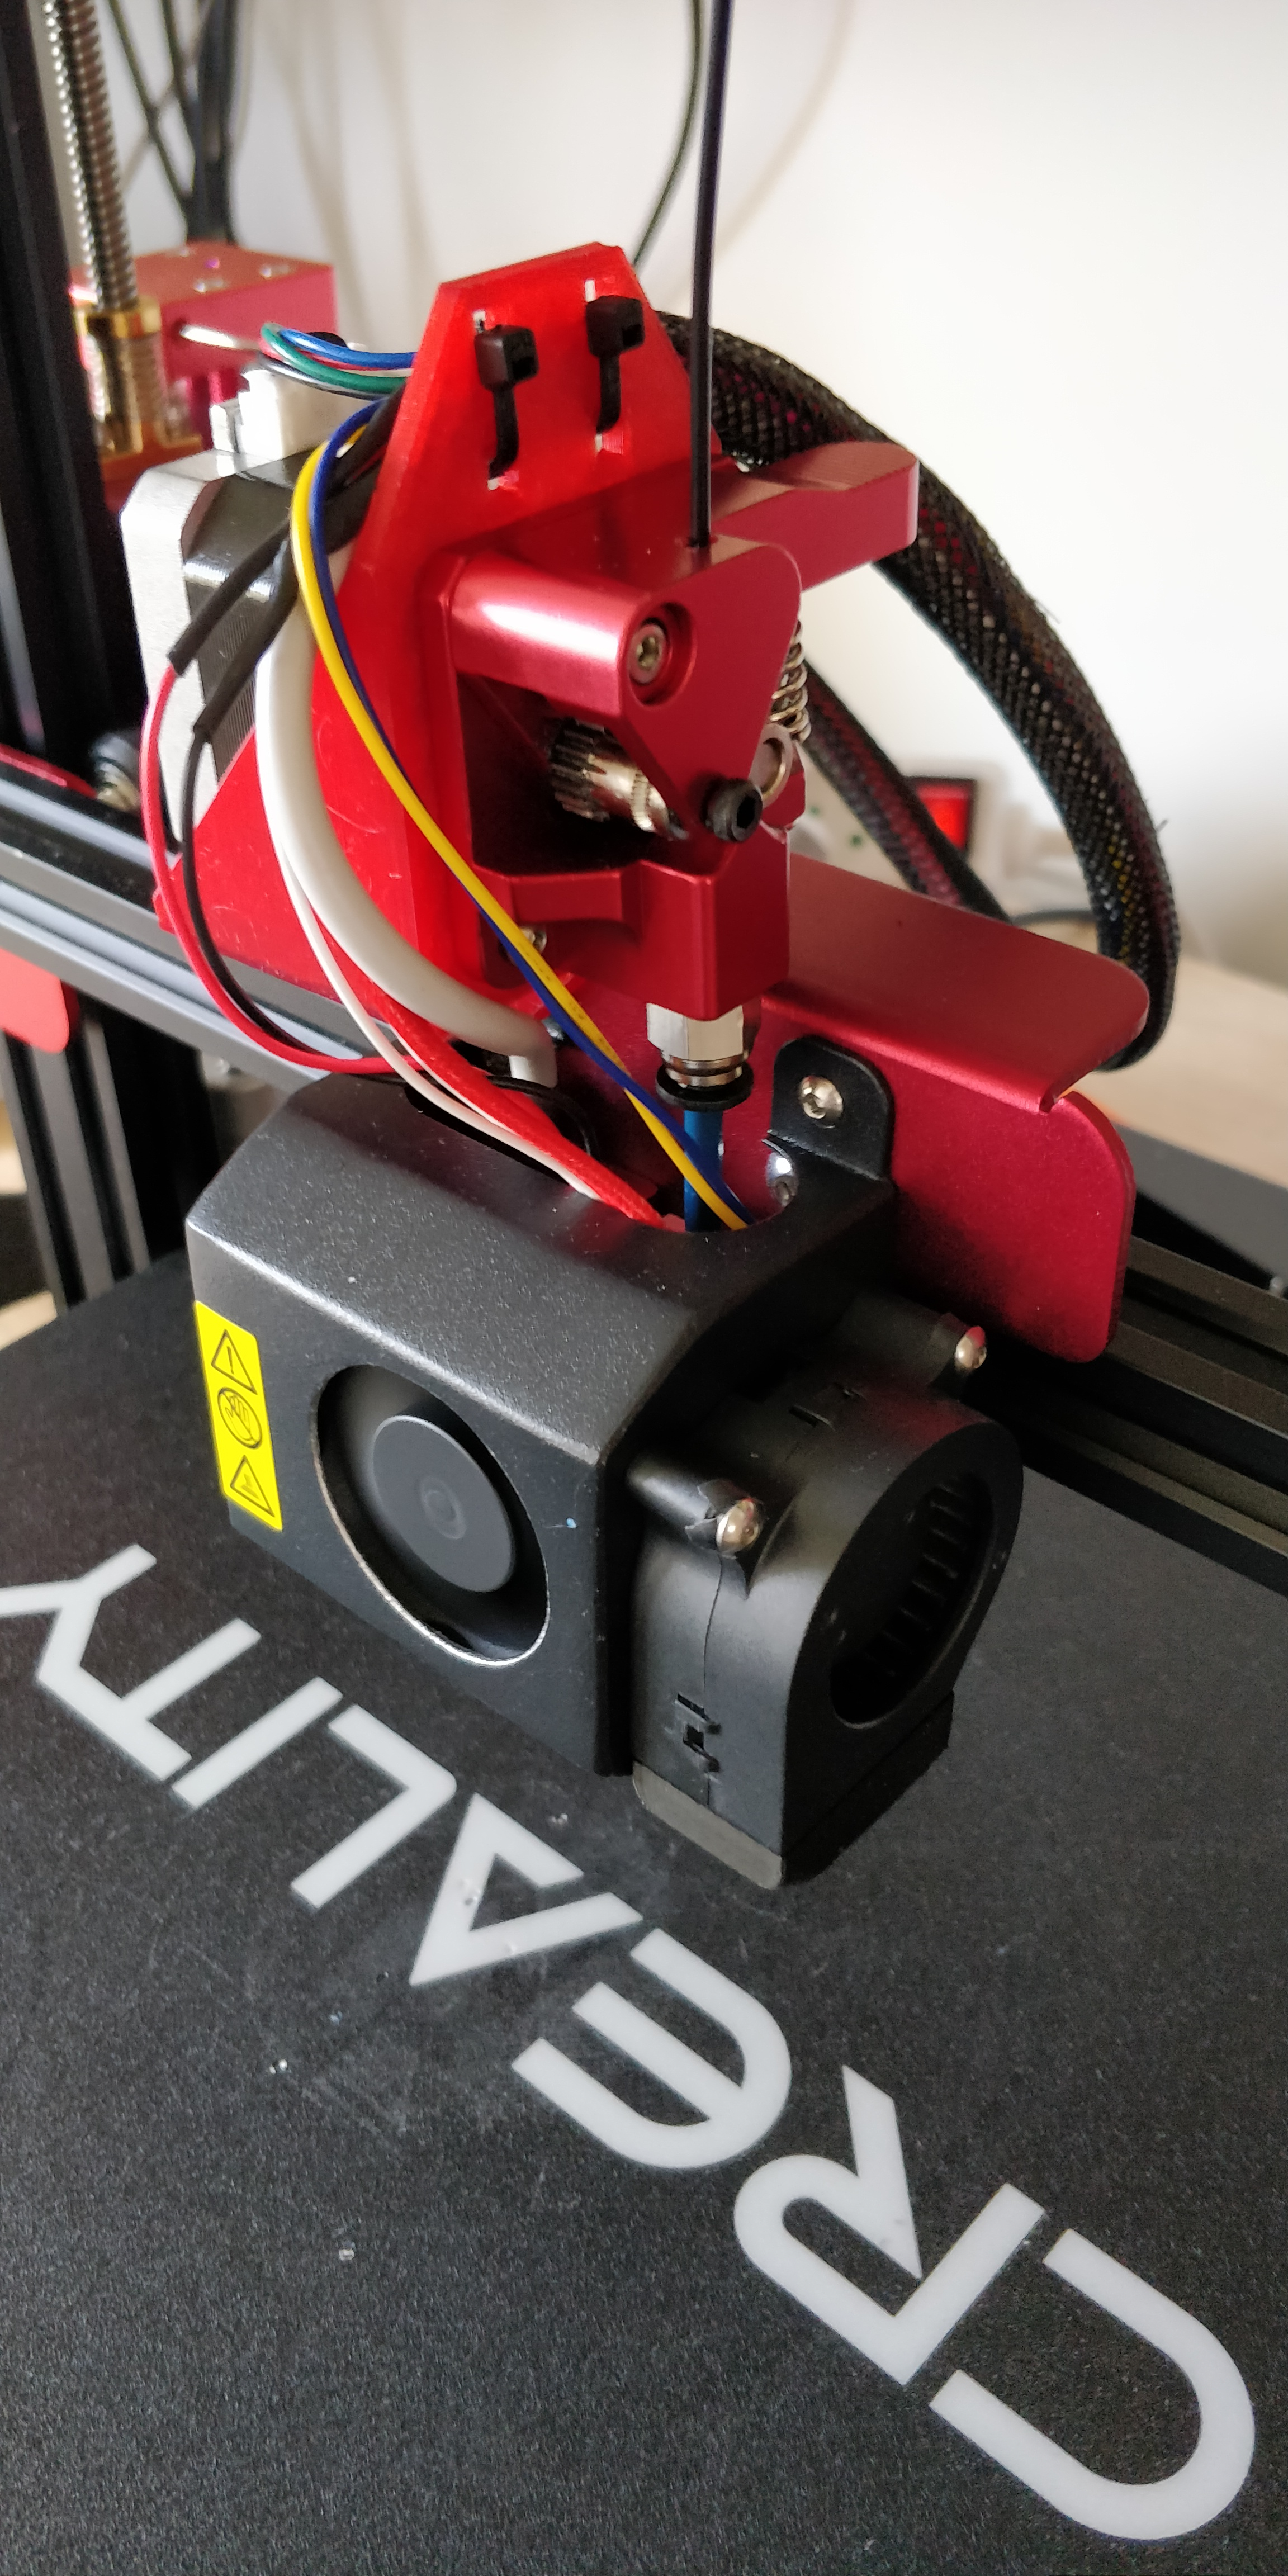 CR-10 S Pro Direct Drive by Lujes - Thingiverse